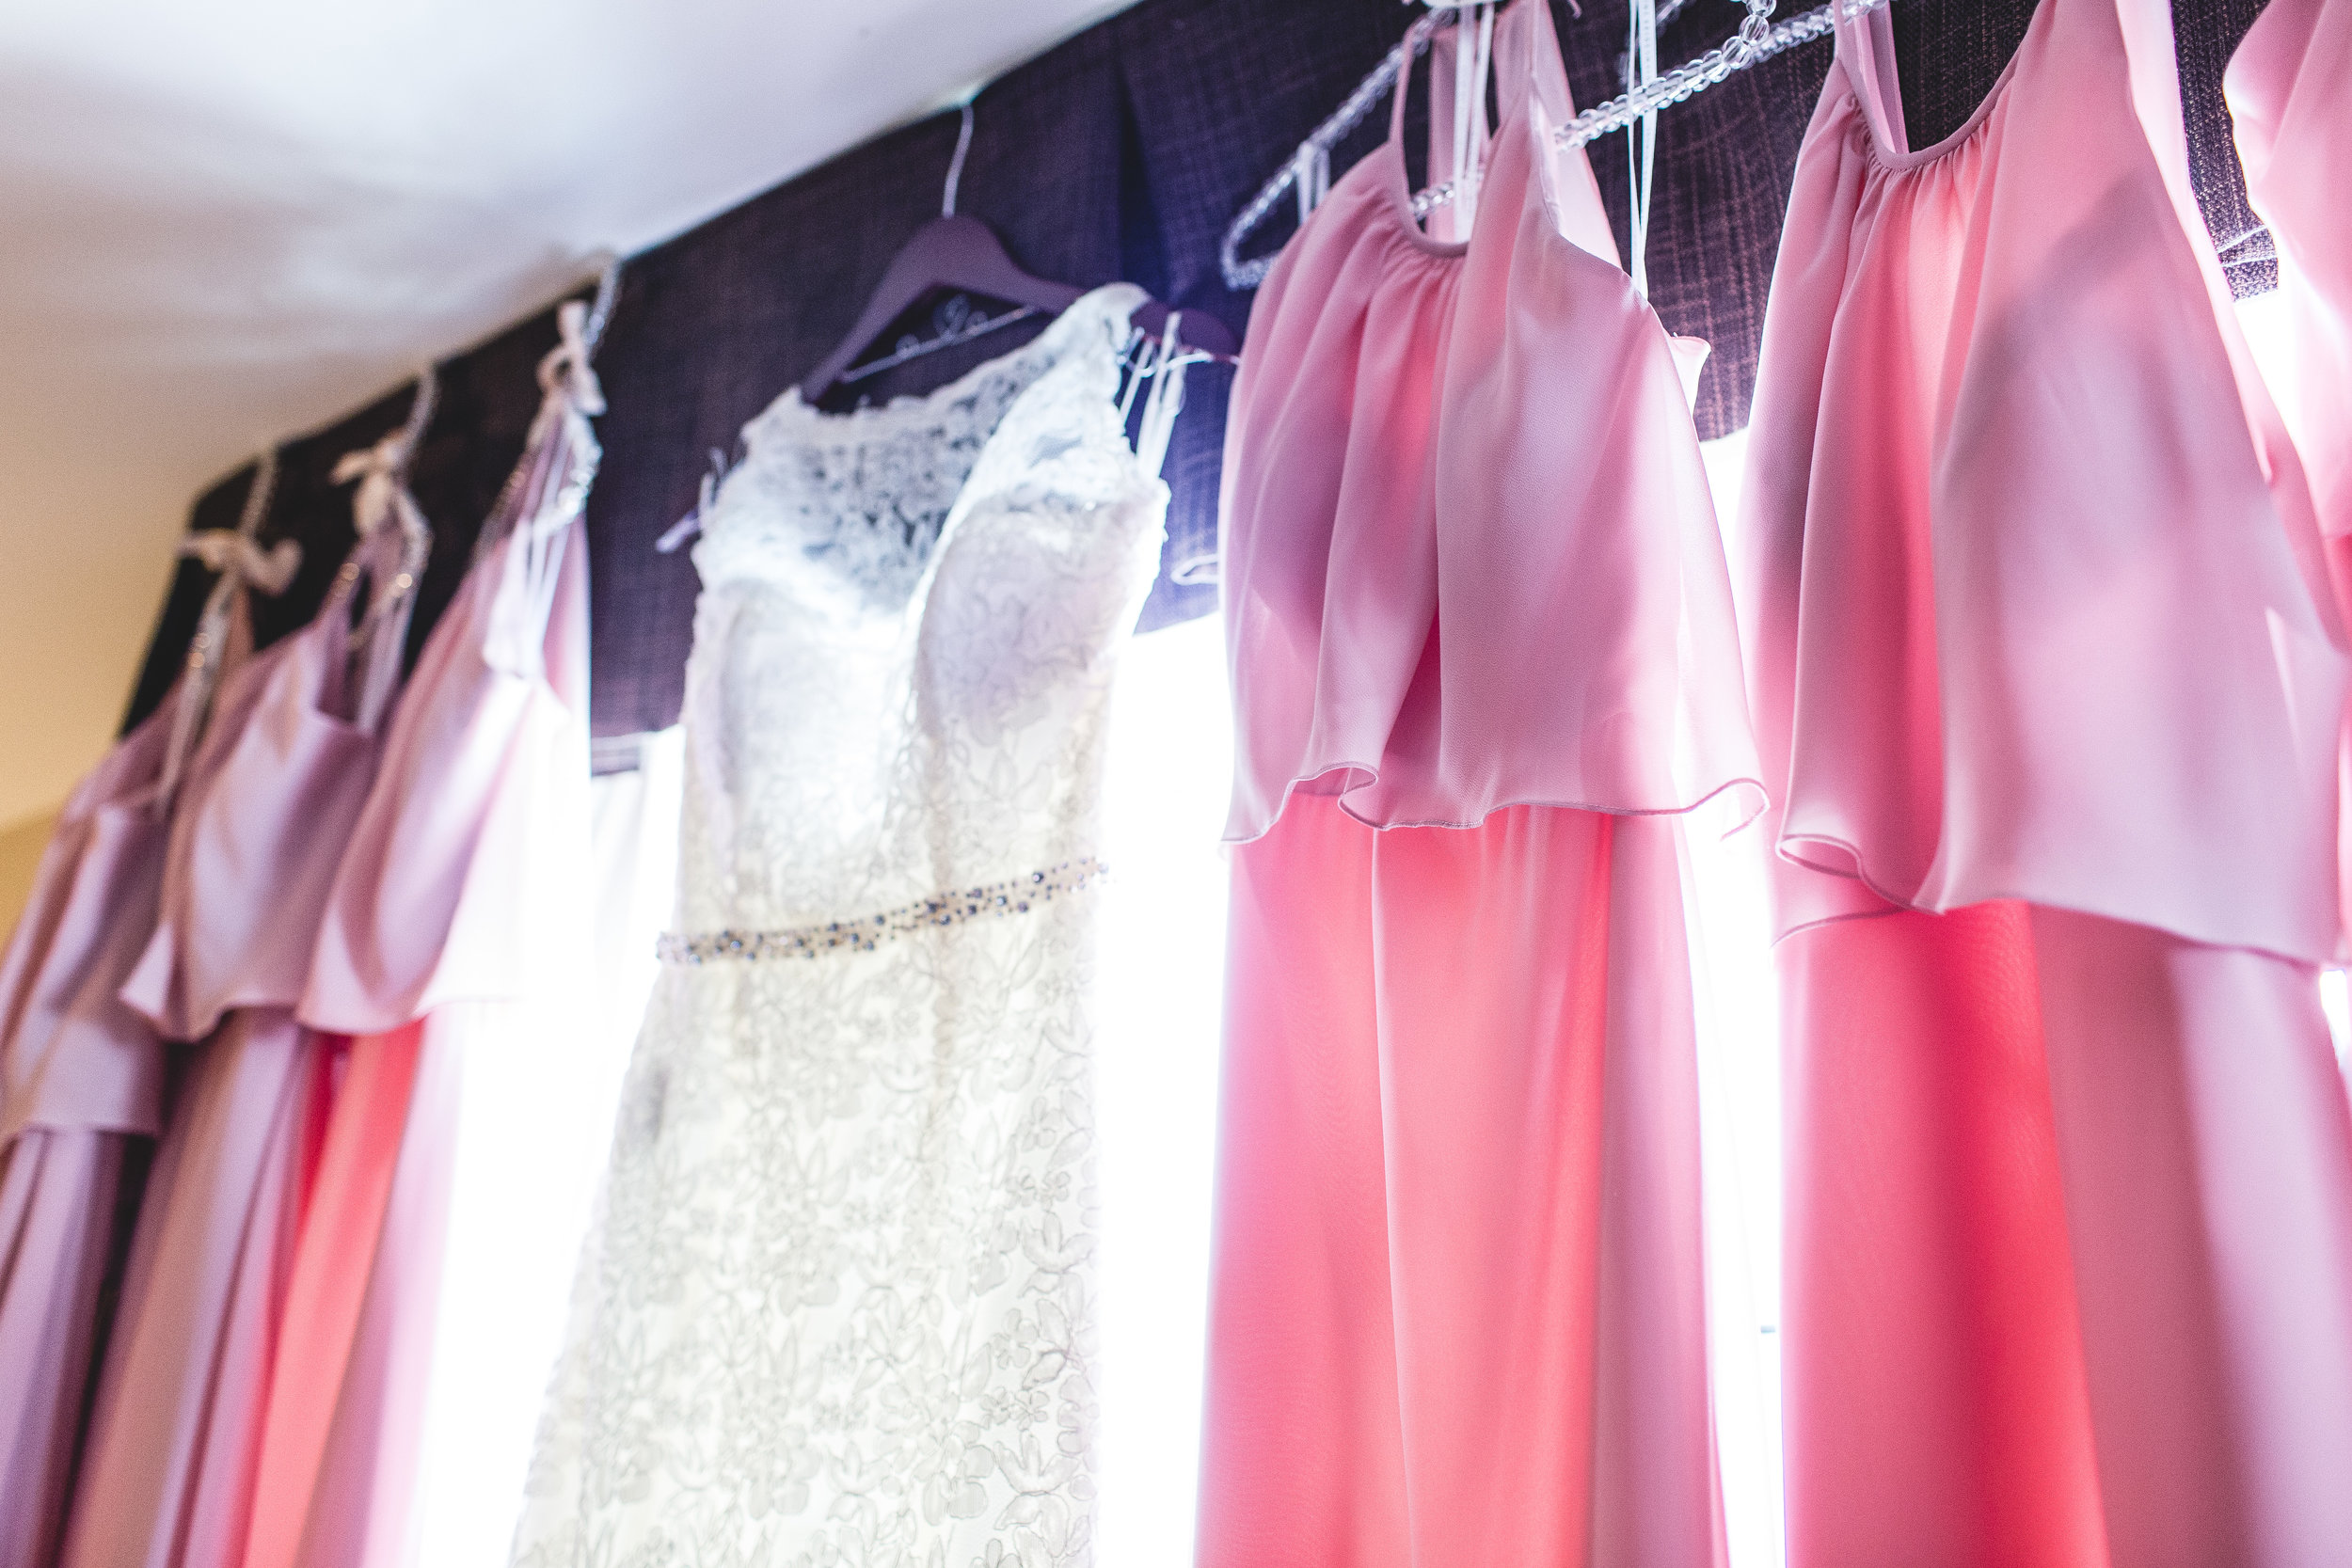 lacy bridal party dresses hanging in a window in columbus ohio